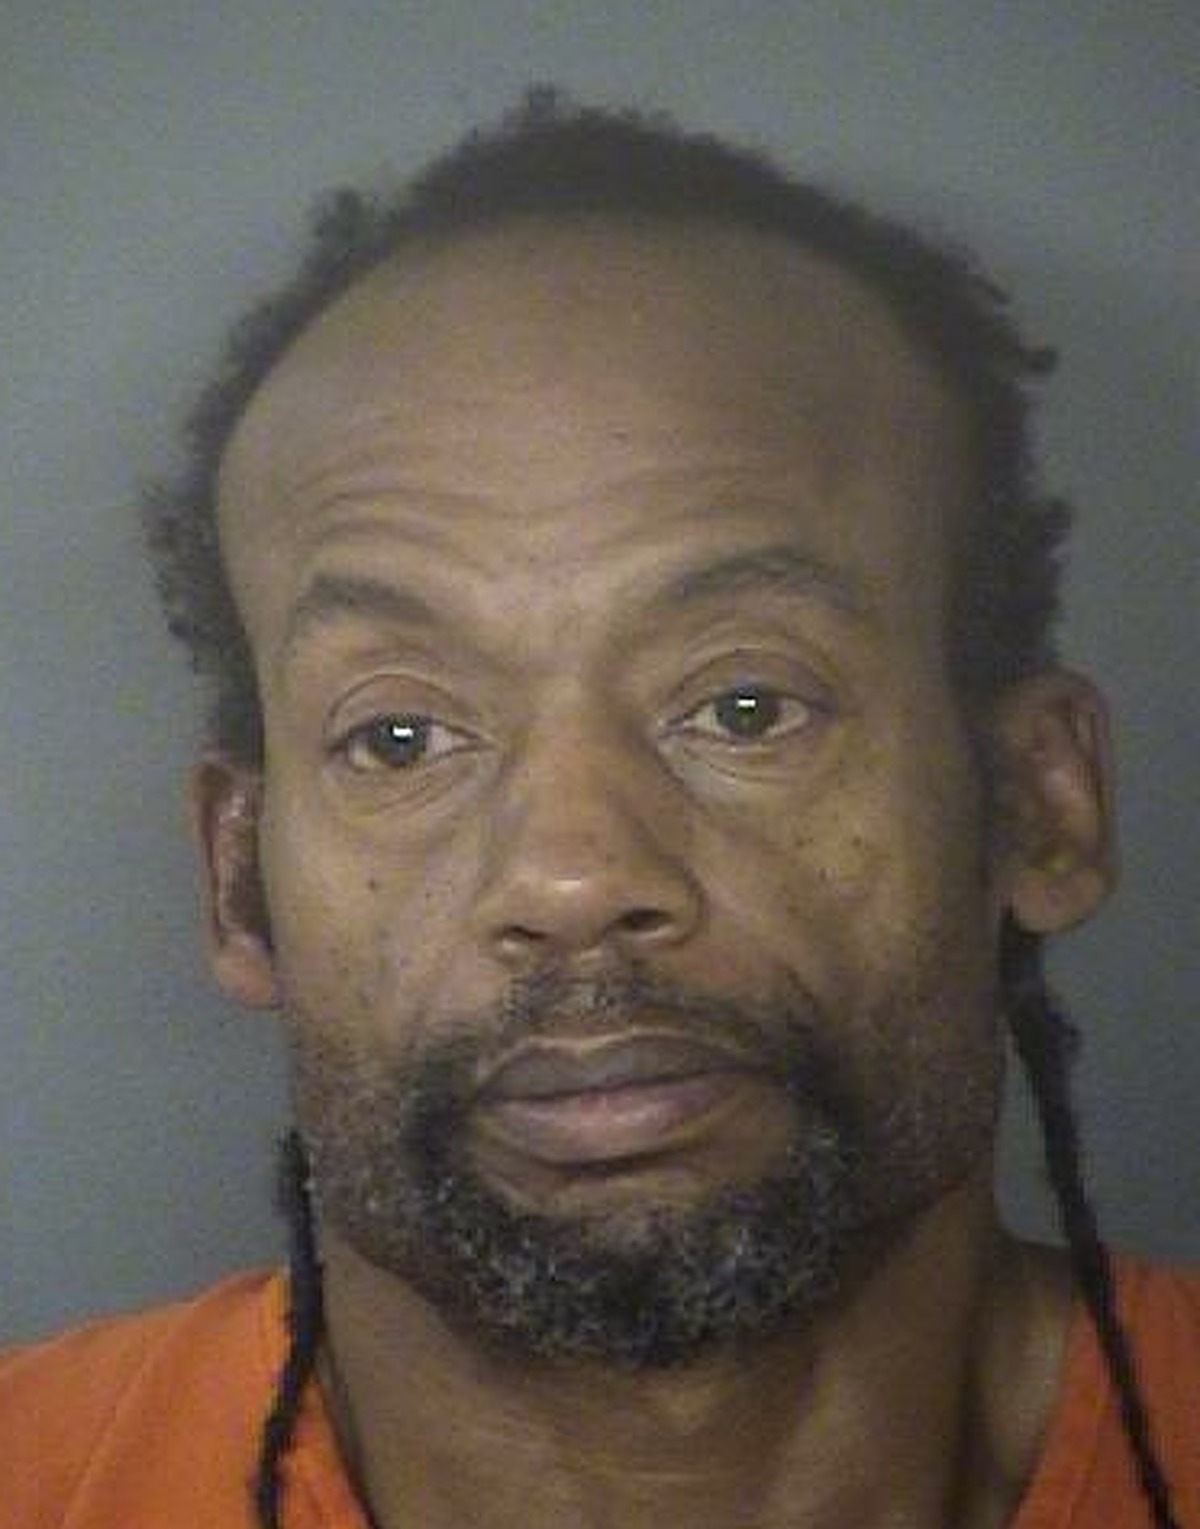 Herbert Alan Nichols, 58, of Houston was arrested in connection with the incident.